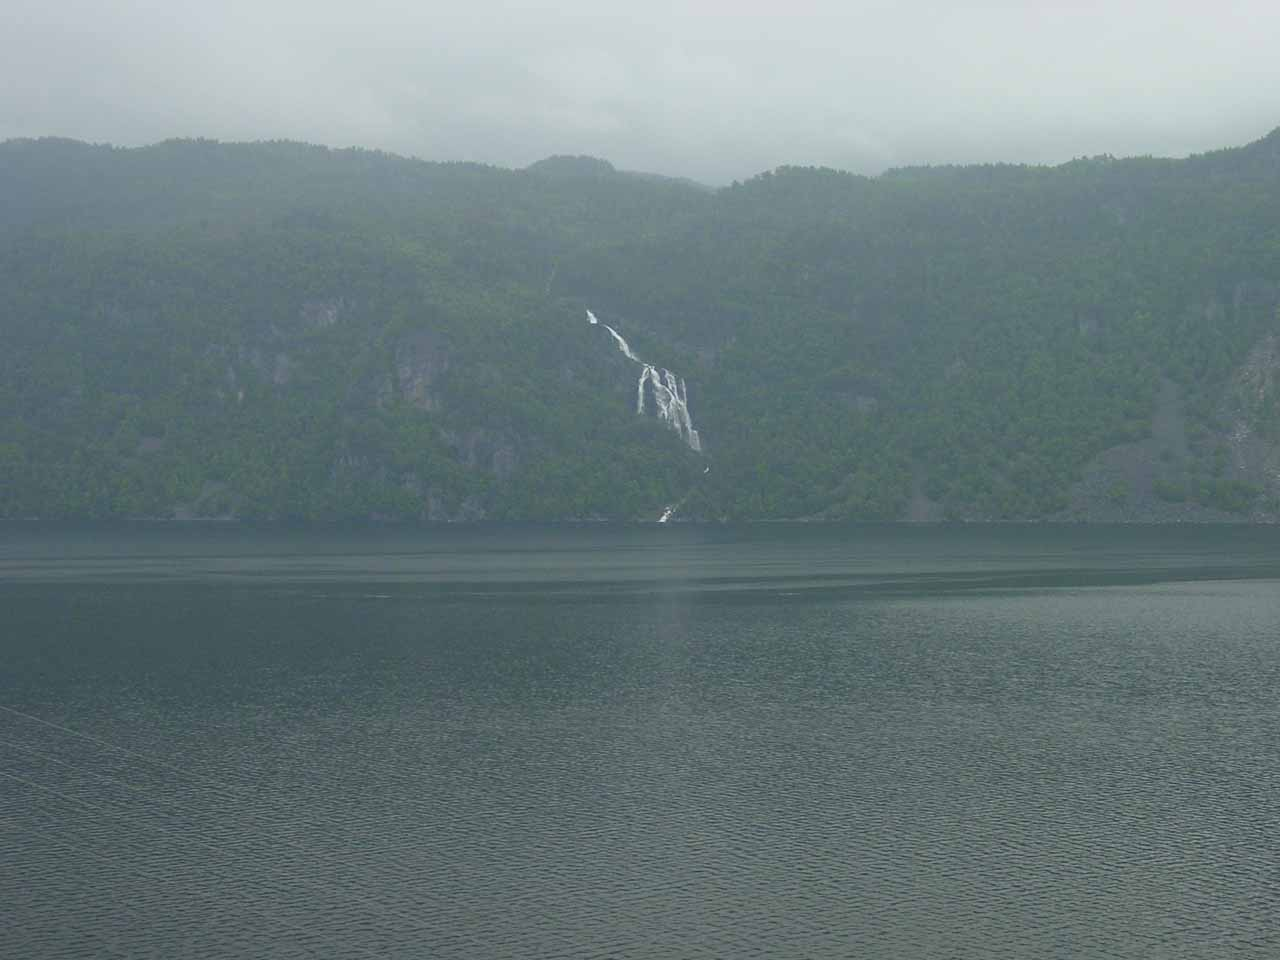 When we looked across Saudafjorden, this was the impressively large waterfall we saw, which I think is called Maldalsfossen